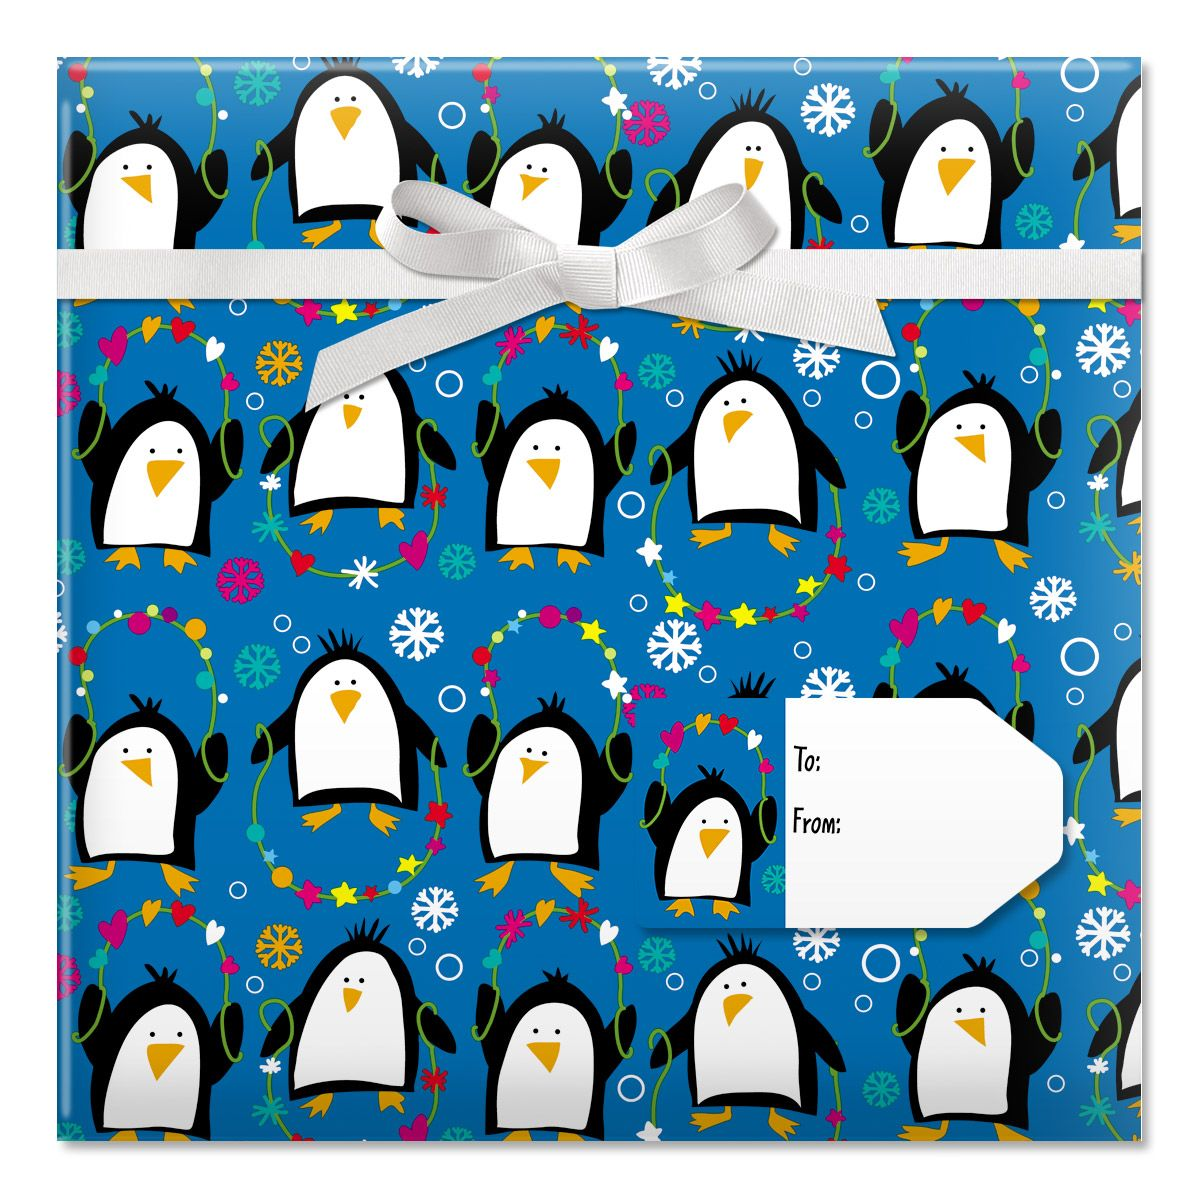 Playful Penguins Jumbo Rolled Gift Wrap and Labels